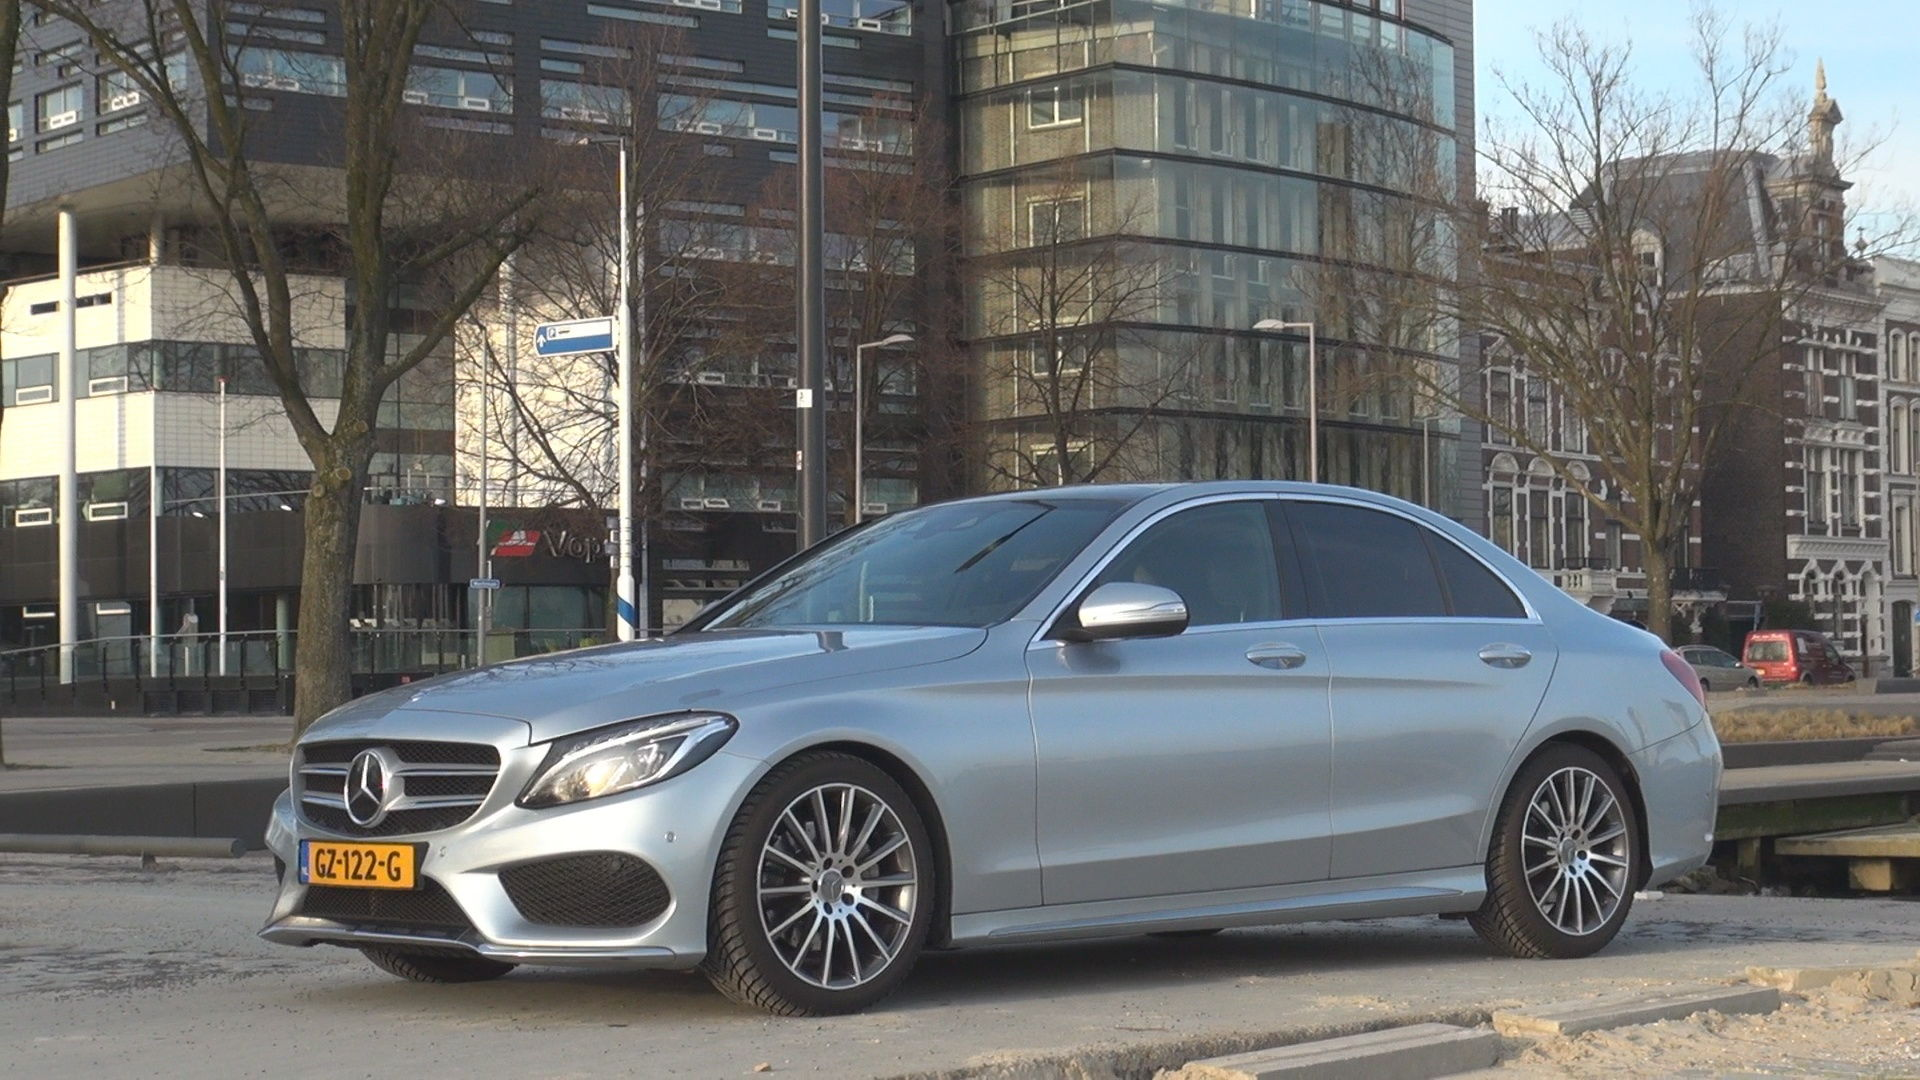 Mercedes AMG C63S Coupe in Selenite Grey PICS Page 11 MBWorld